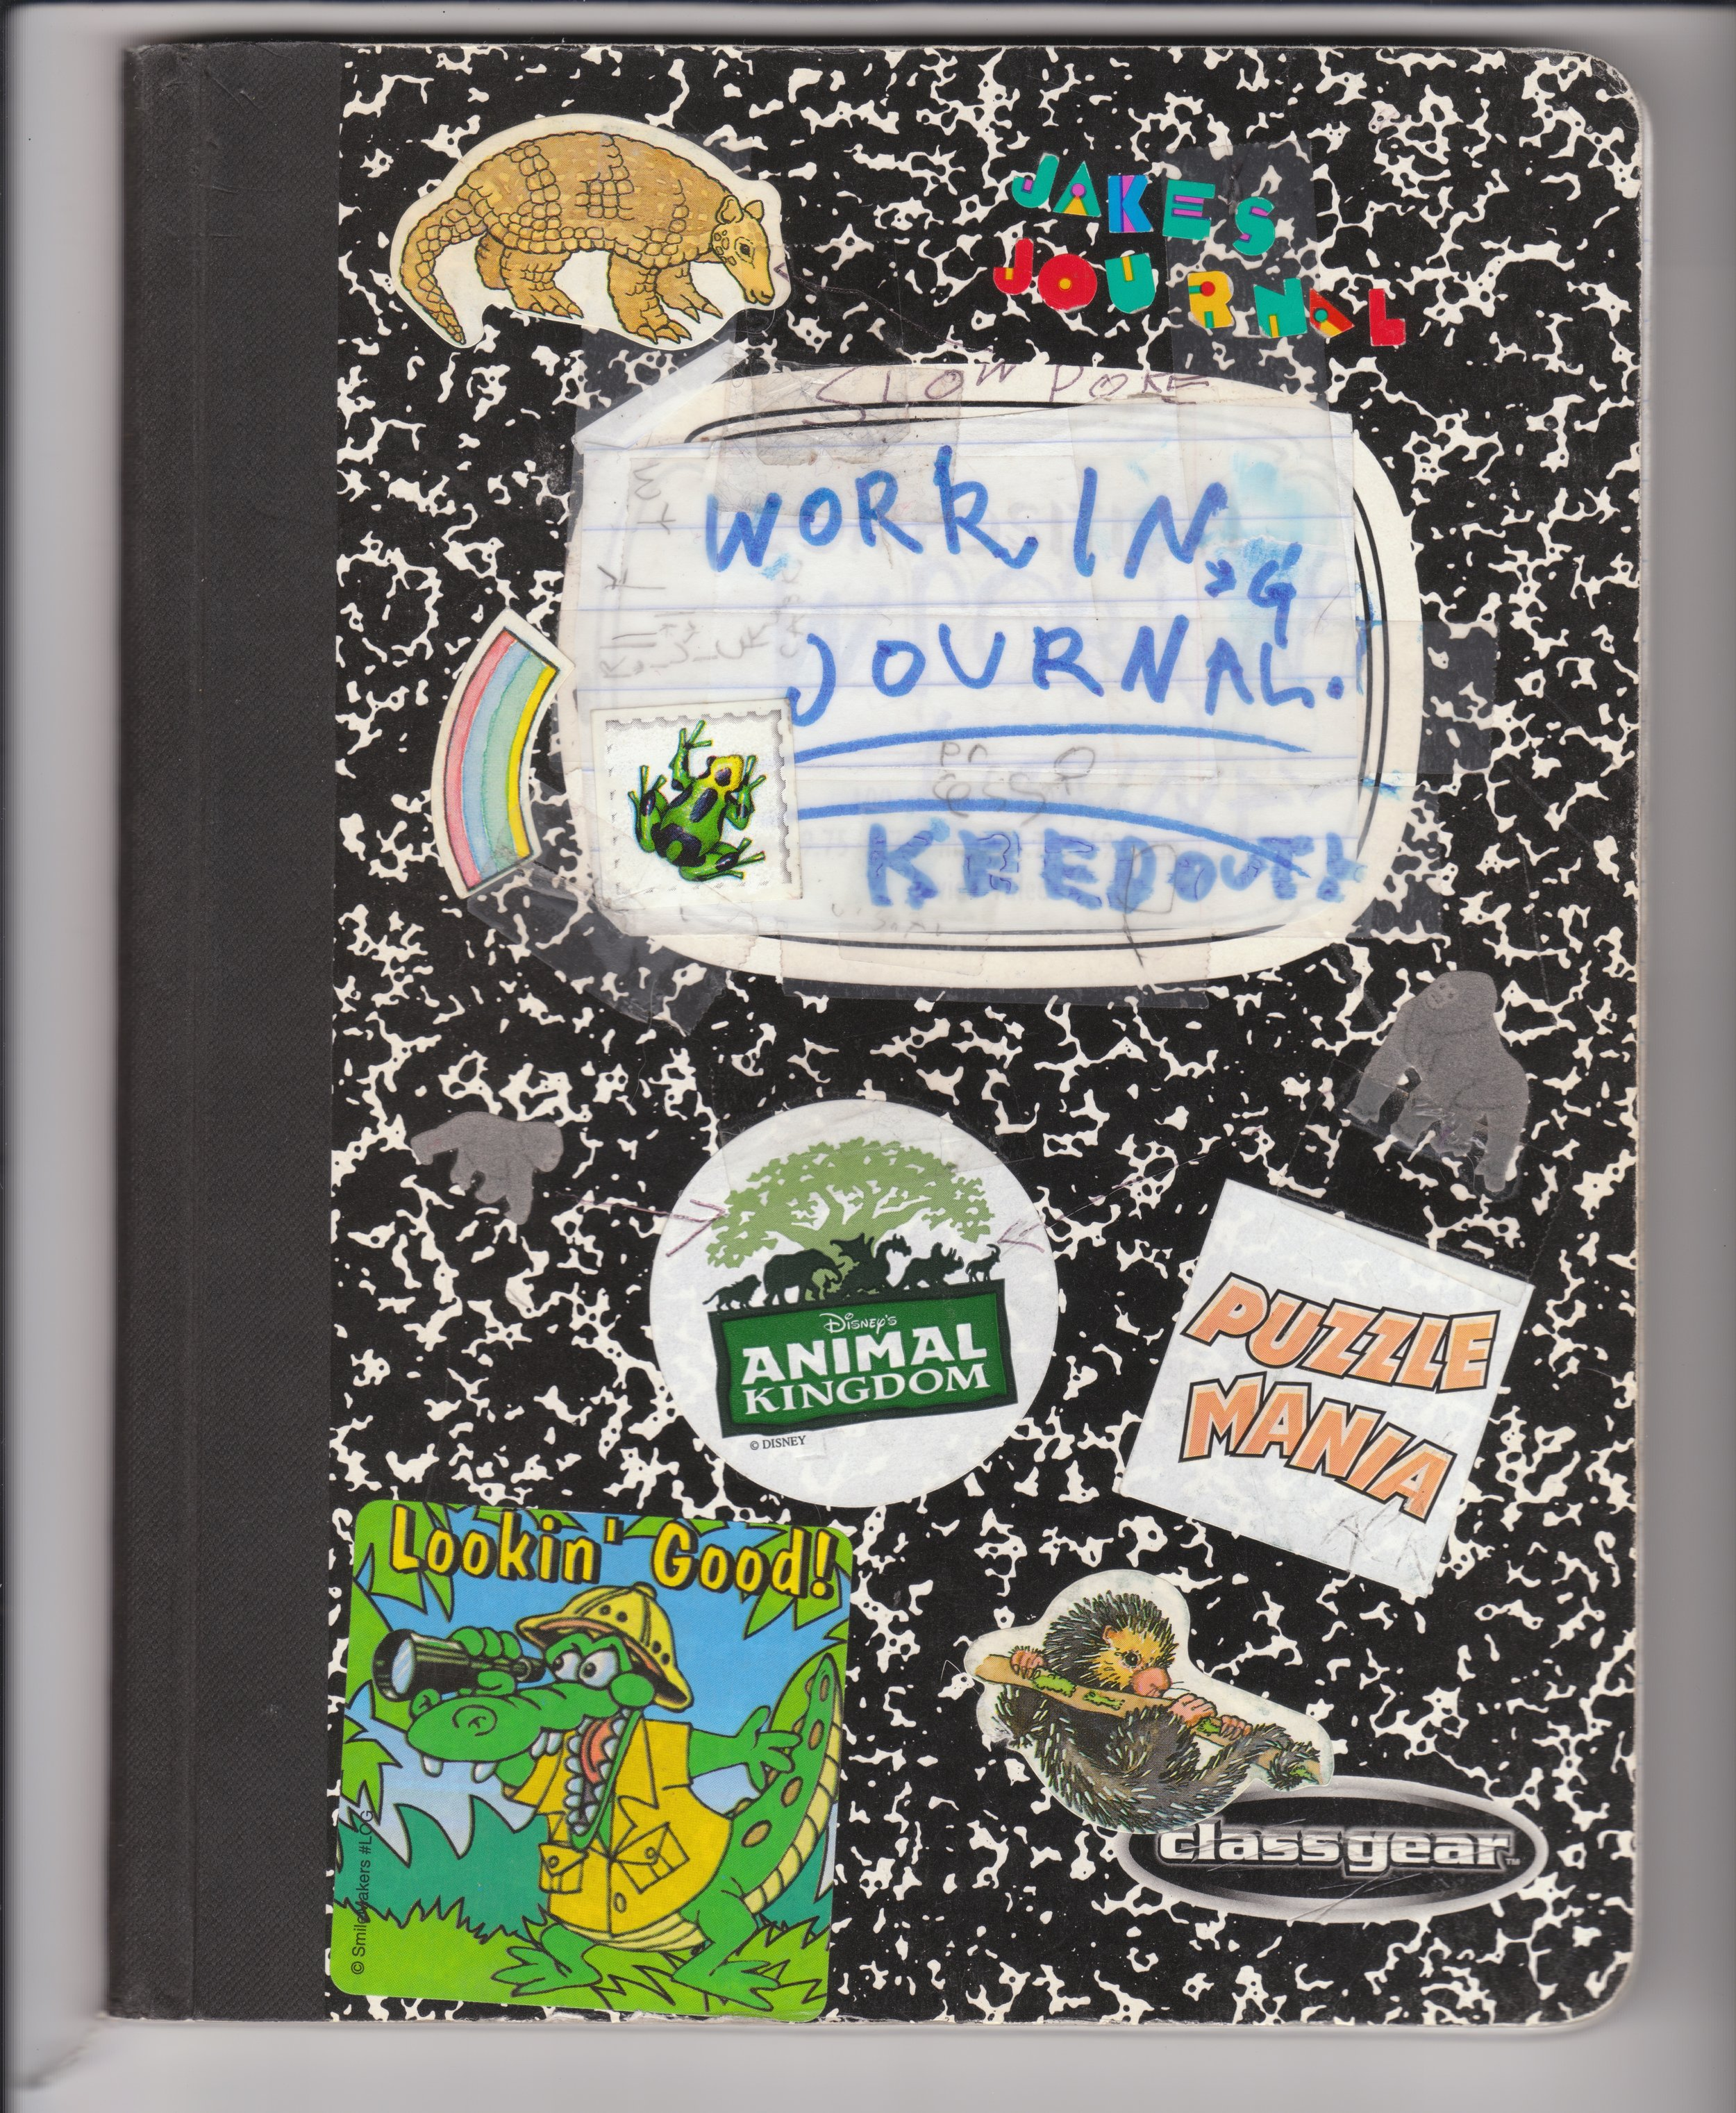 Working Journal (undated, c.2002)